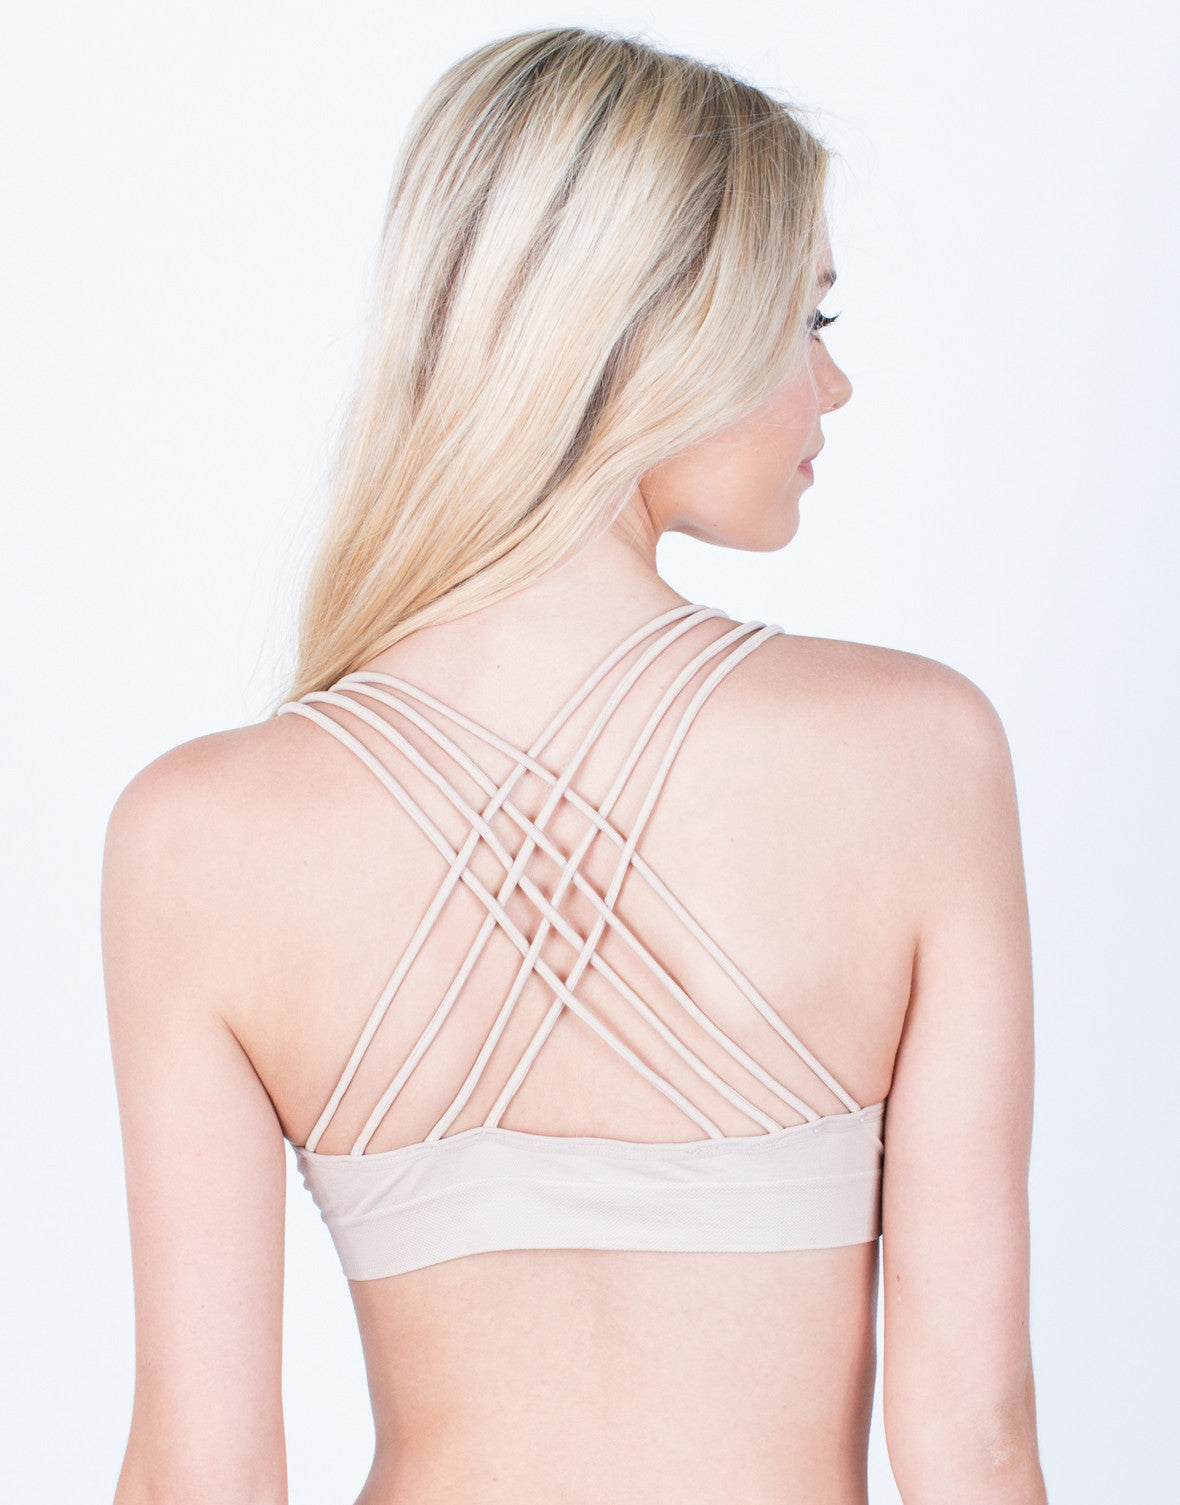 Back View of Strapped Up V-Neck Bralette